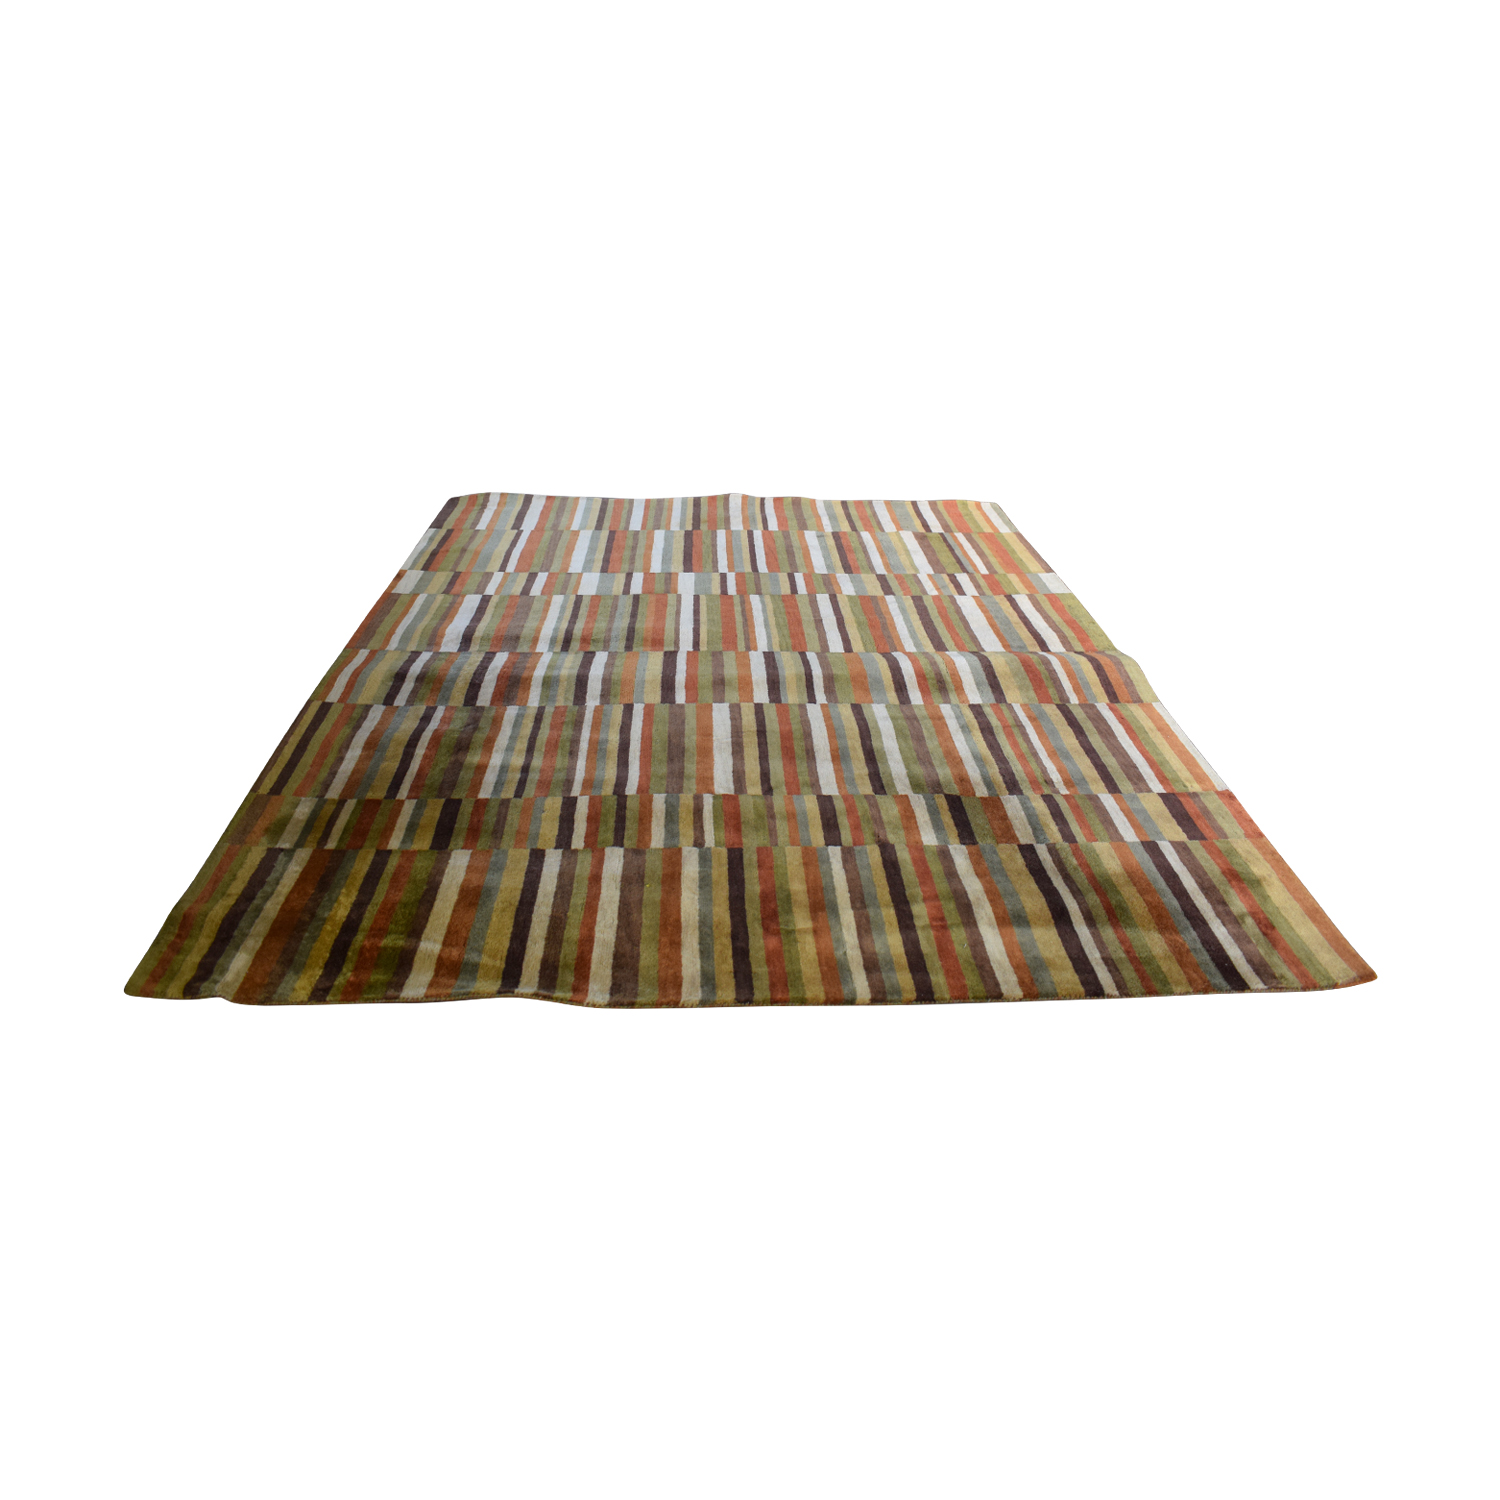 buy Ethan Allen Ethan Allen Multi-Colored Striped Rug online